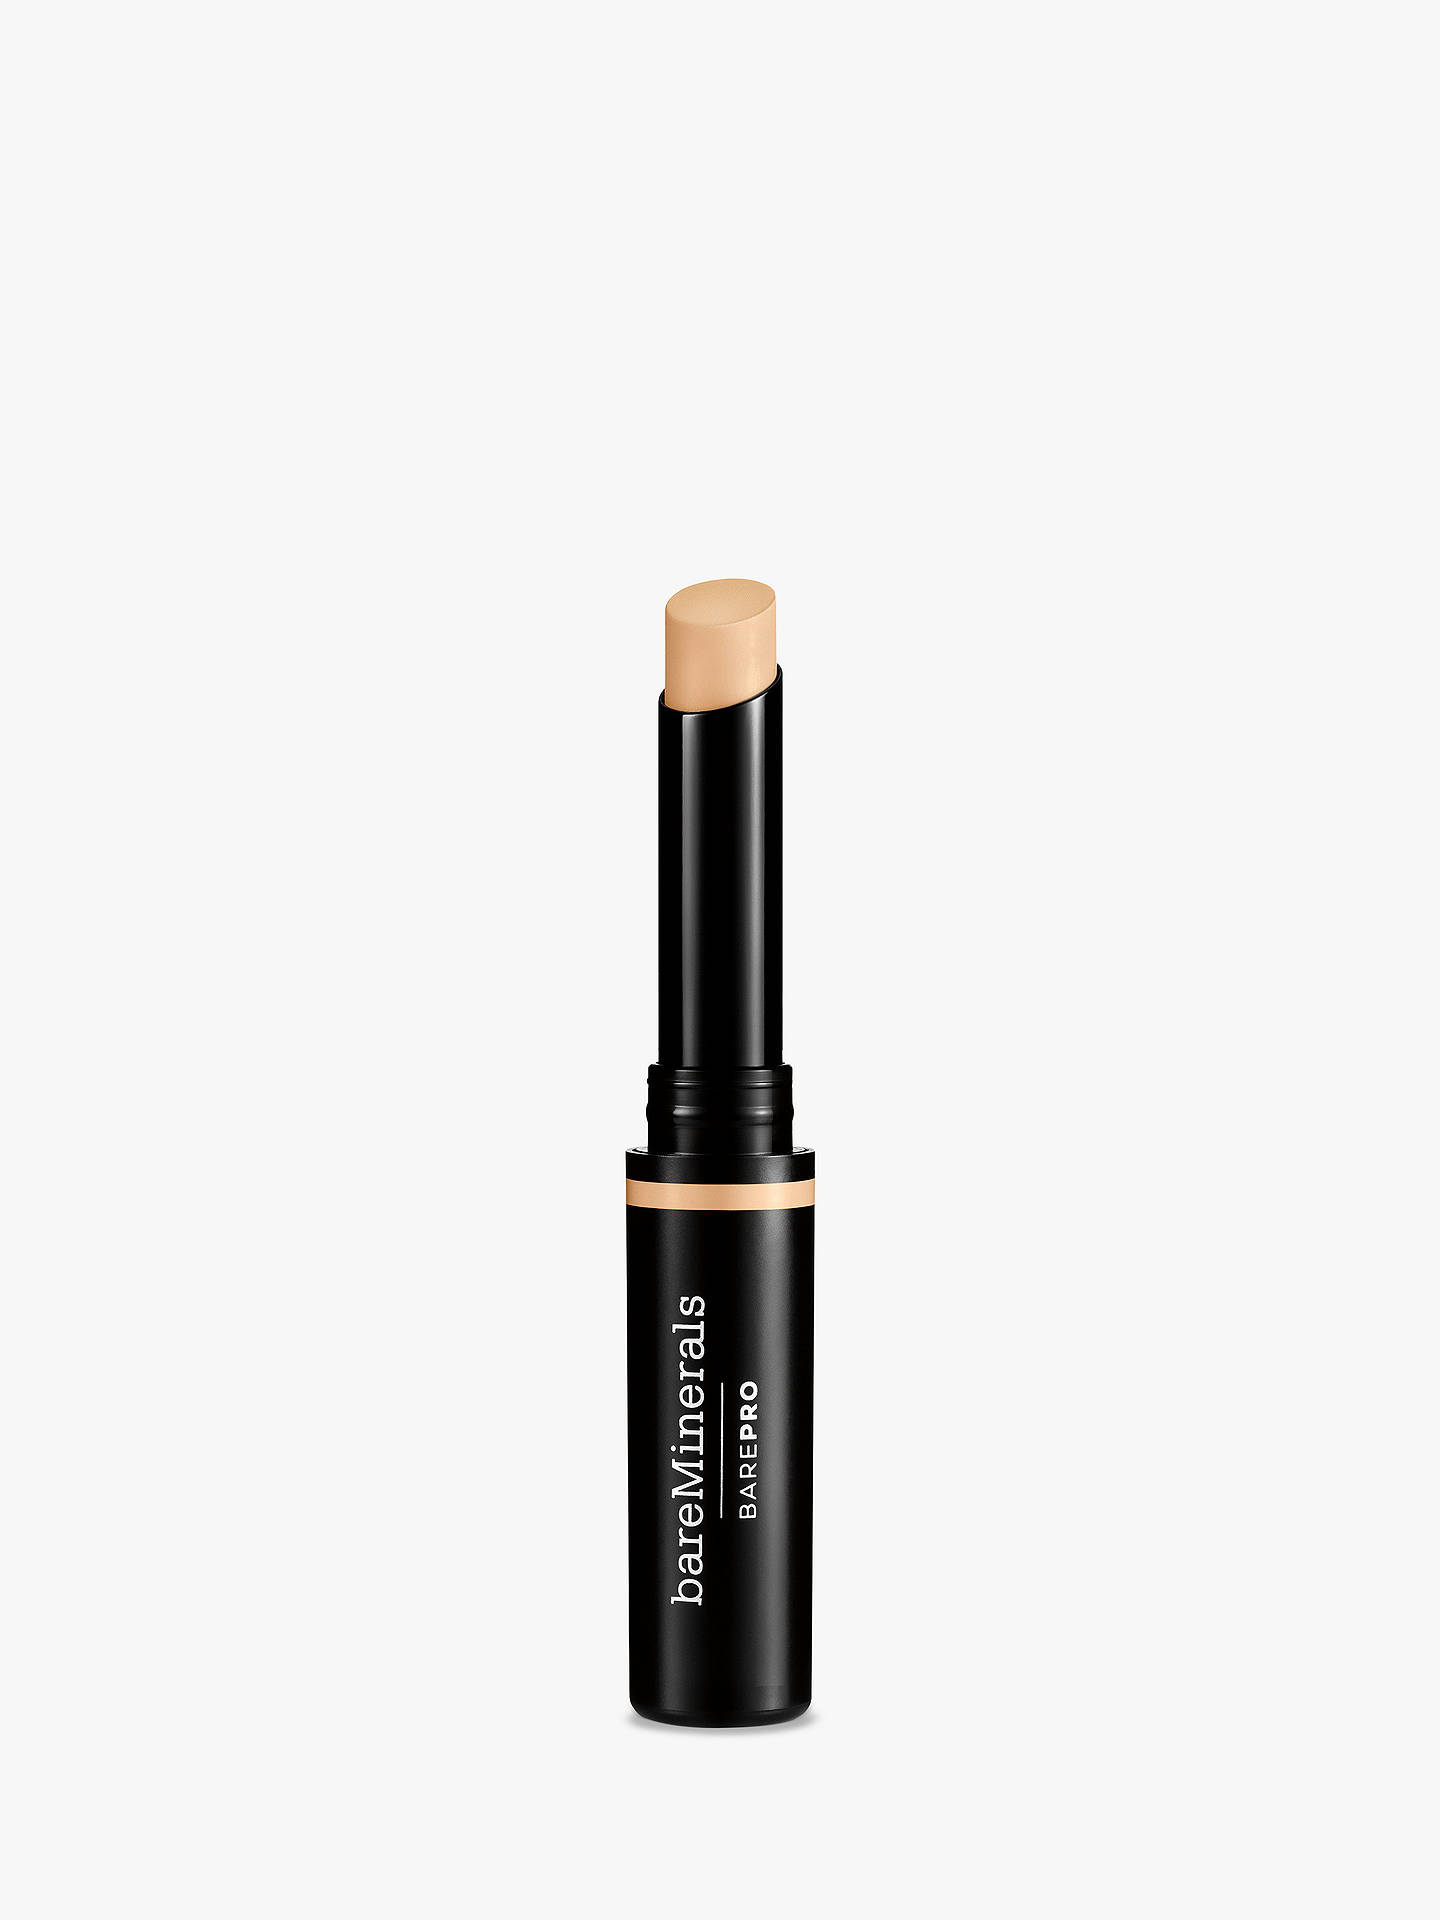 BuybareMinerals BAREPRO™ 16hr Full Coverage Concealer, Fair/Light Warm 02 Online at johnlewis.com